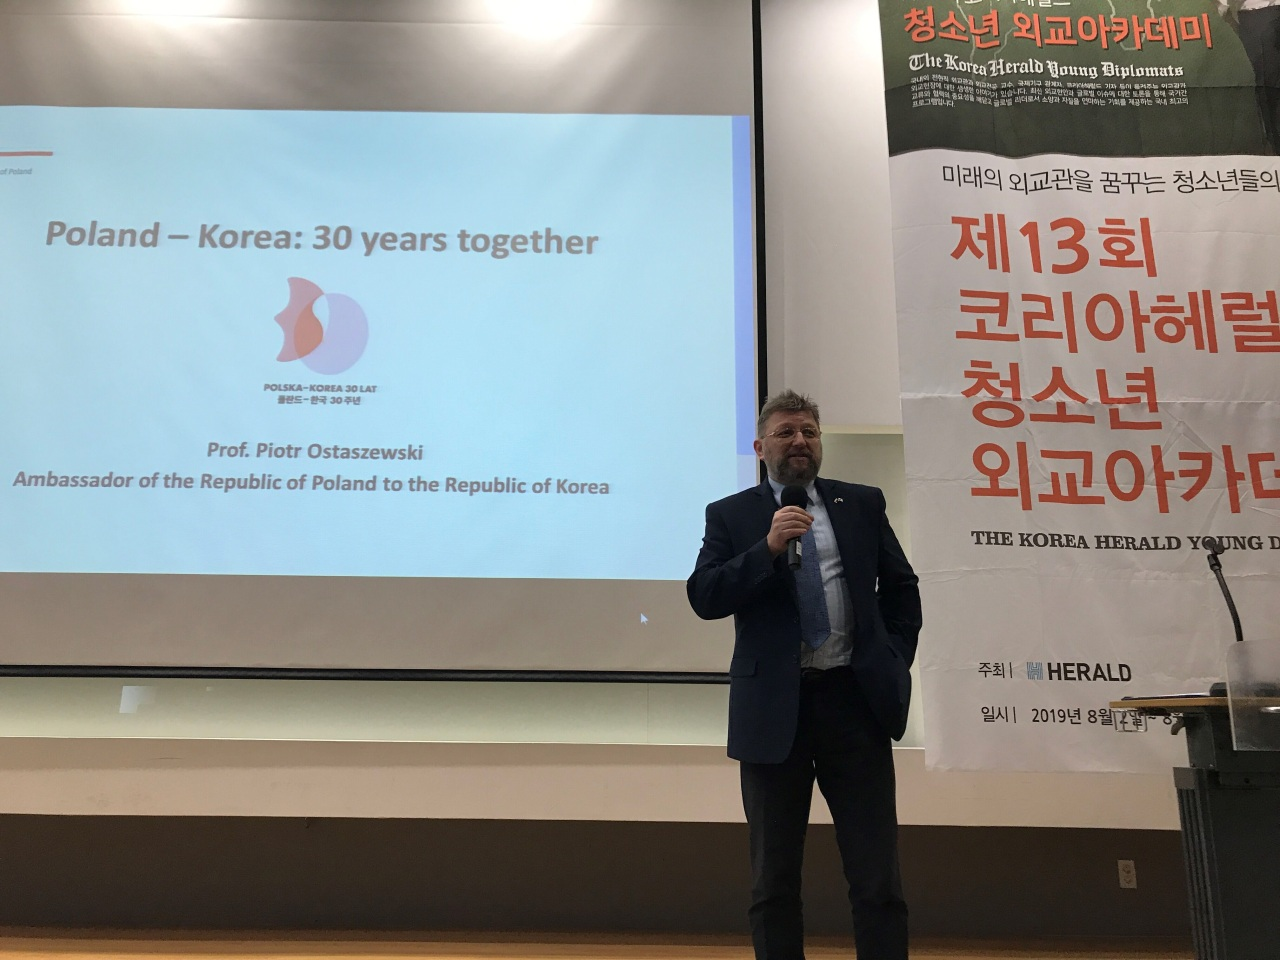 Polish Ambassador to Korea Piotr Ostaszewski speaks to students at the Young Diplomats Academy in Songdo, Incheon, on Aug. 2. (The Korea Herald Young Diplomats Academy and Young Opinion Leaders' Knowledge Forum)